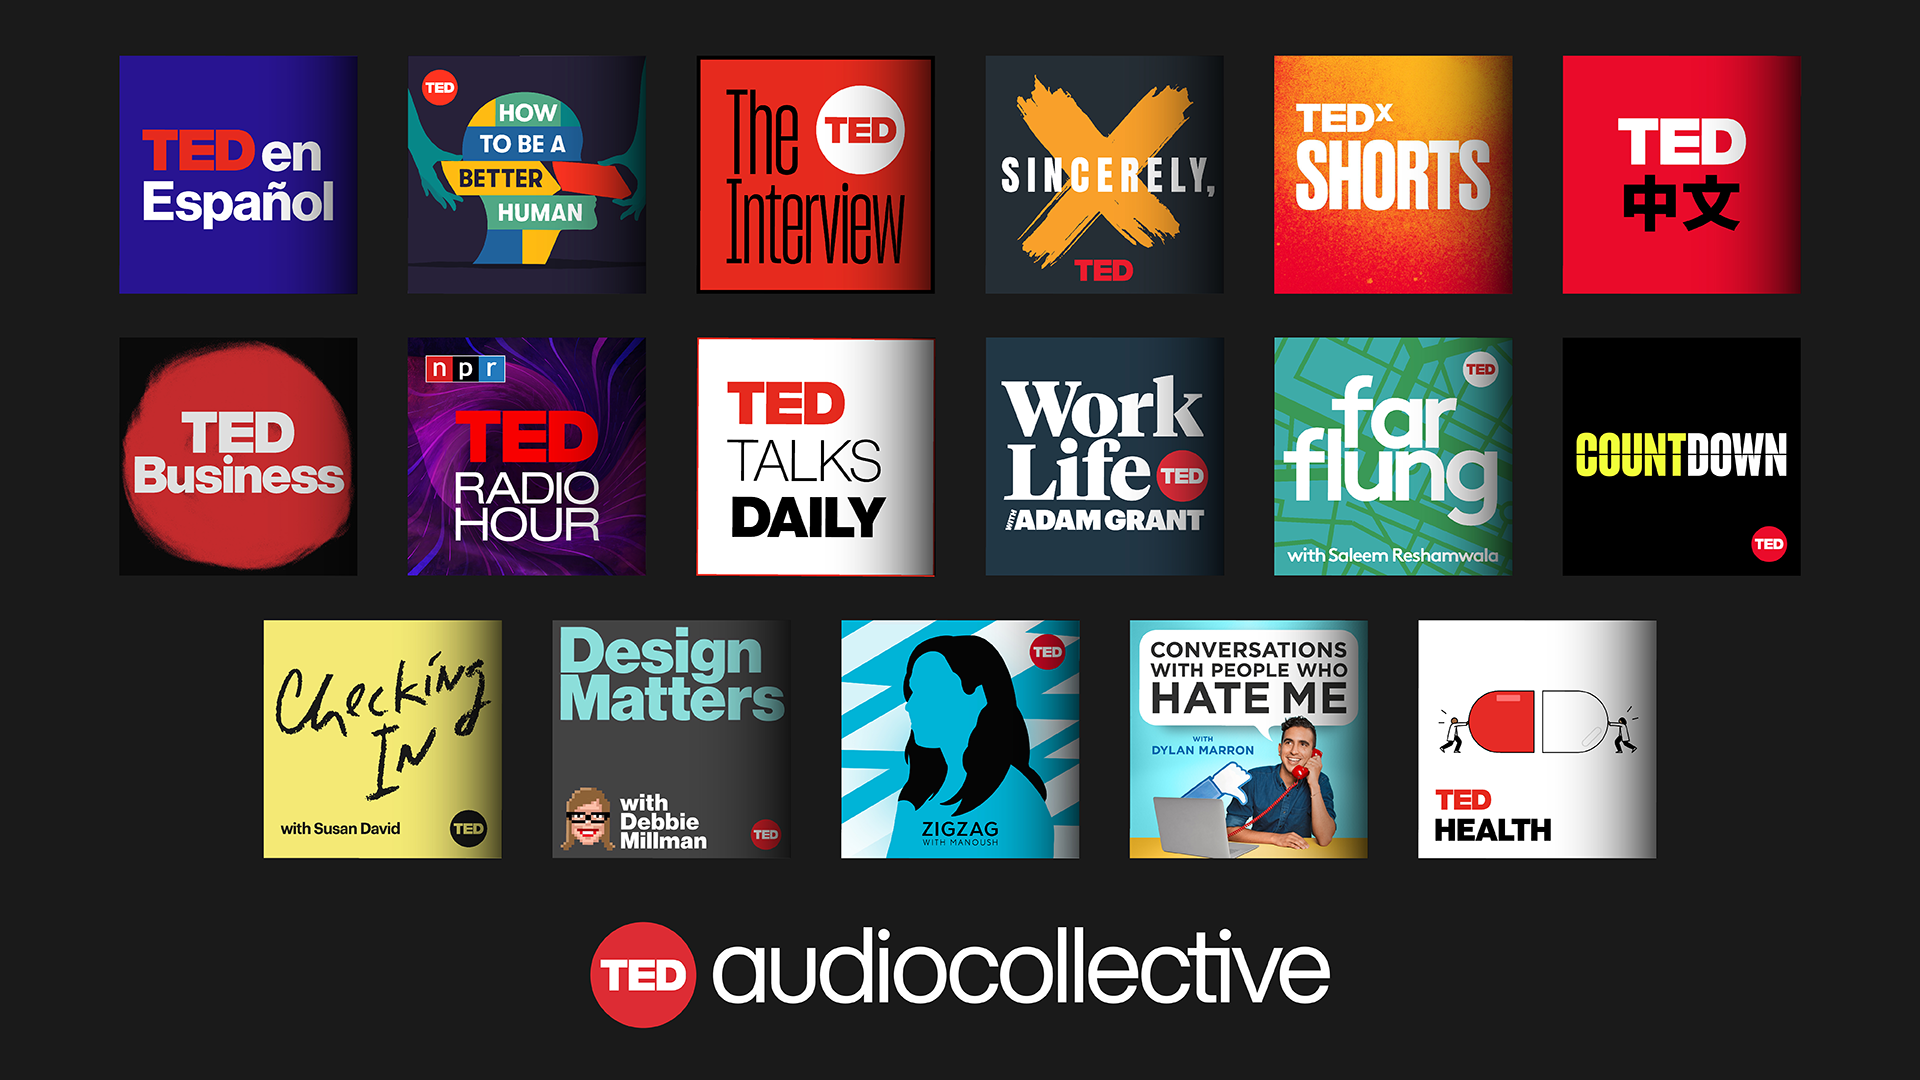 TED launches TED Audio Collective for podcasts